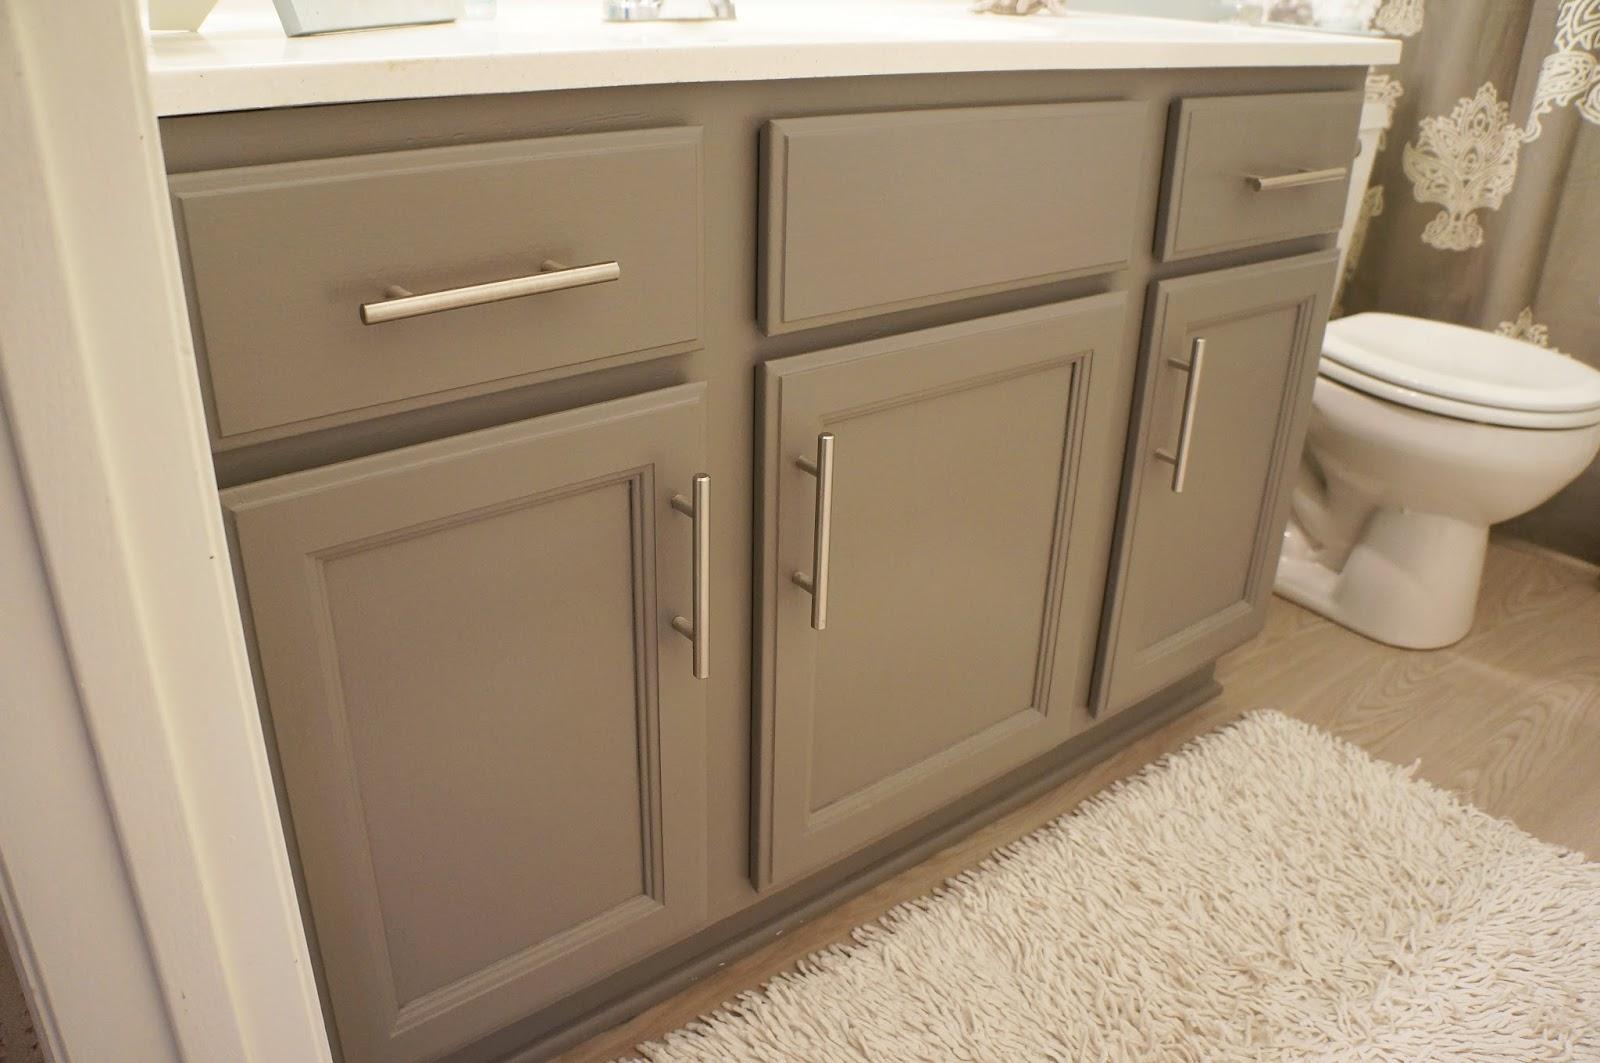 It 39 s a pretty prins life bathroom redo the before - How do you paint bathroom cabinets ...